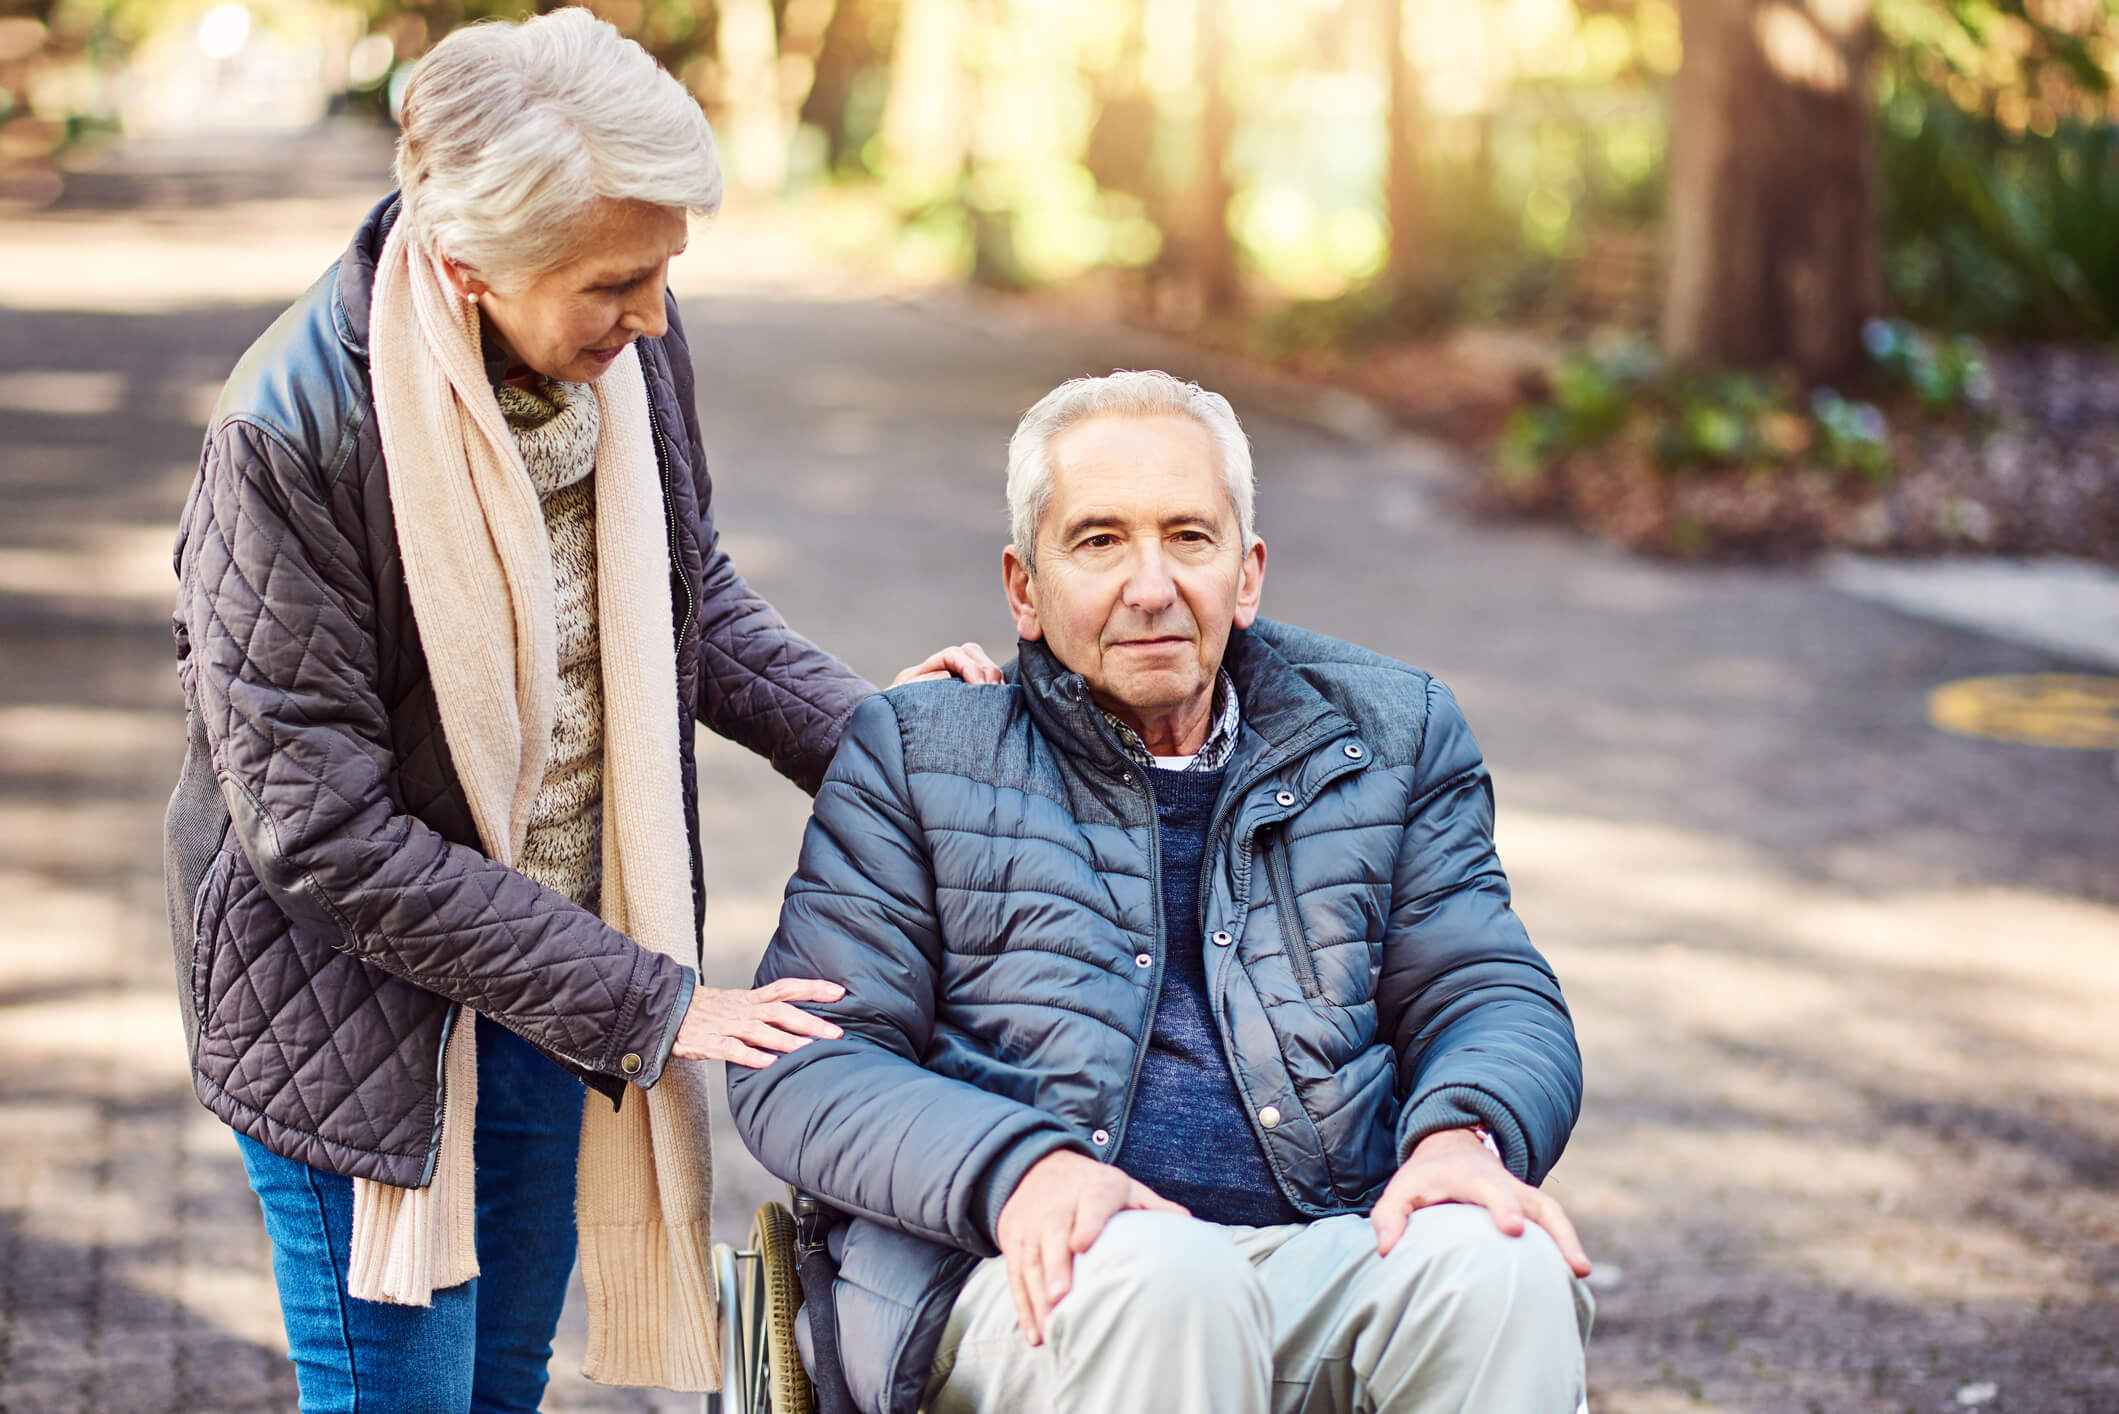 Older man sitting in wheelchair with wife standing along side him in a park.